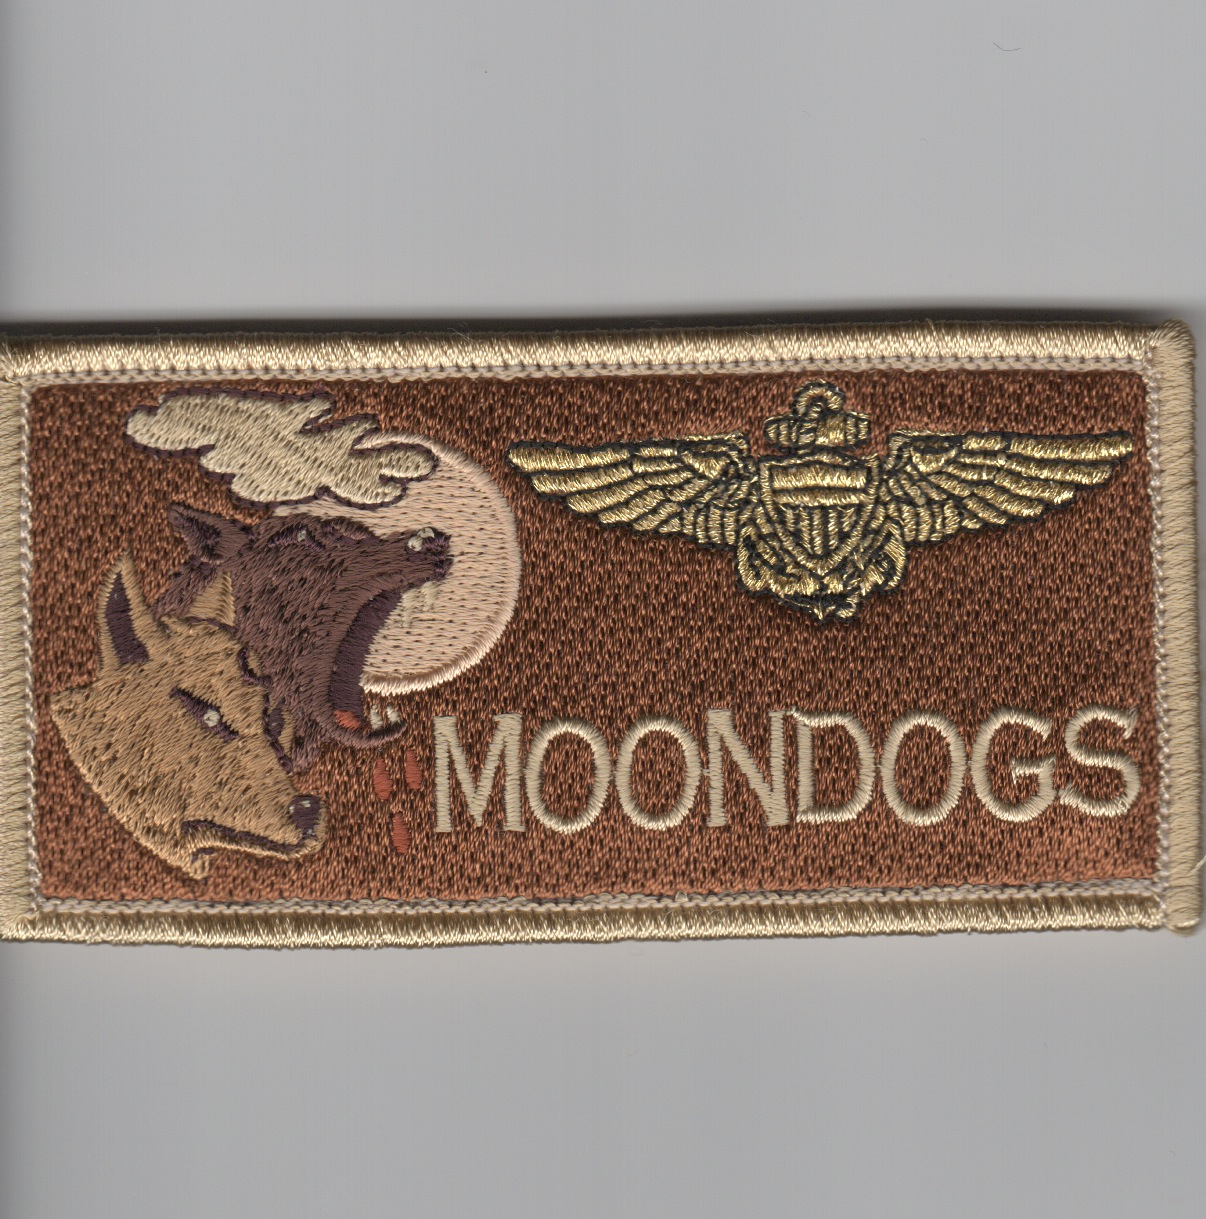 'MOONDOGS' Pilot Nametag ('REGULAR' Des)